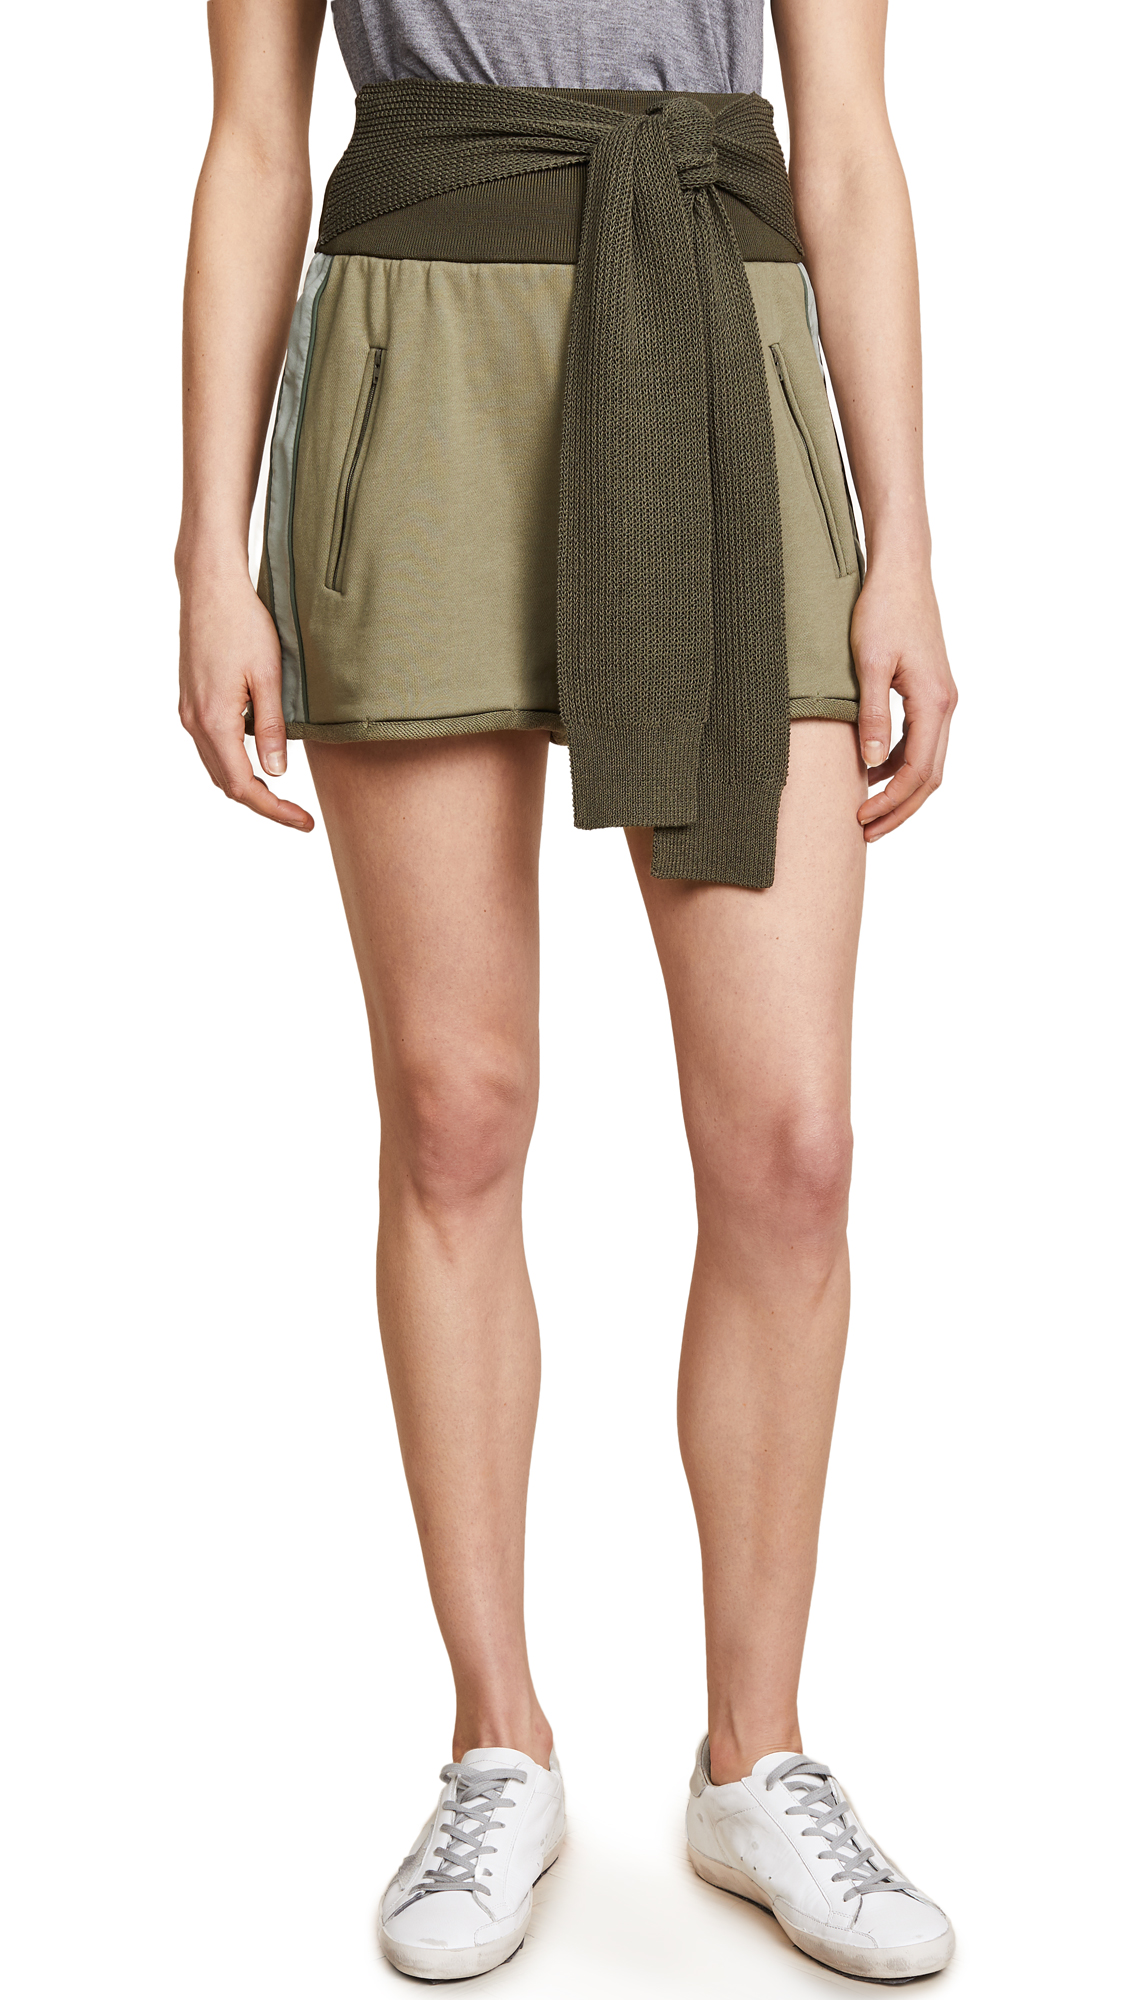 3.1 Phillip Lim Shorts with Tie In Moss